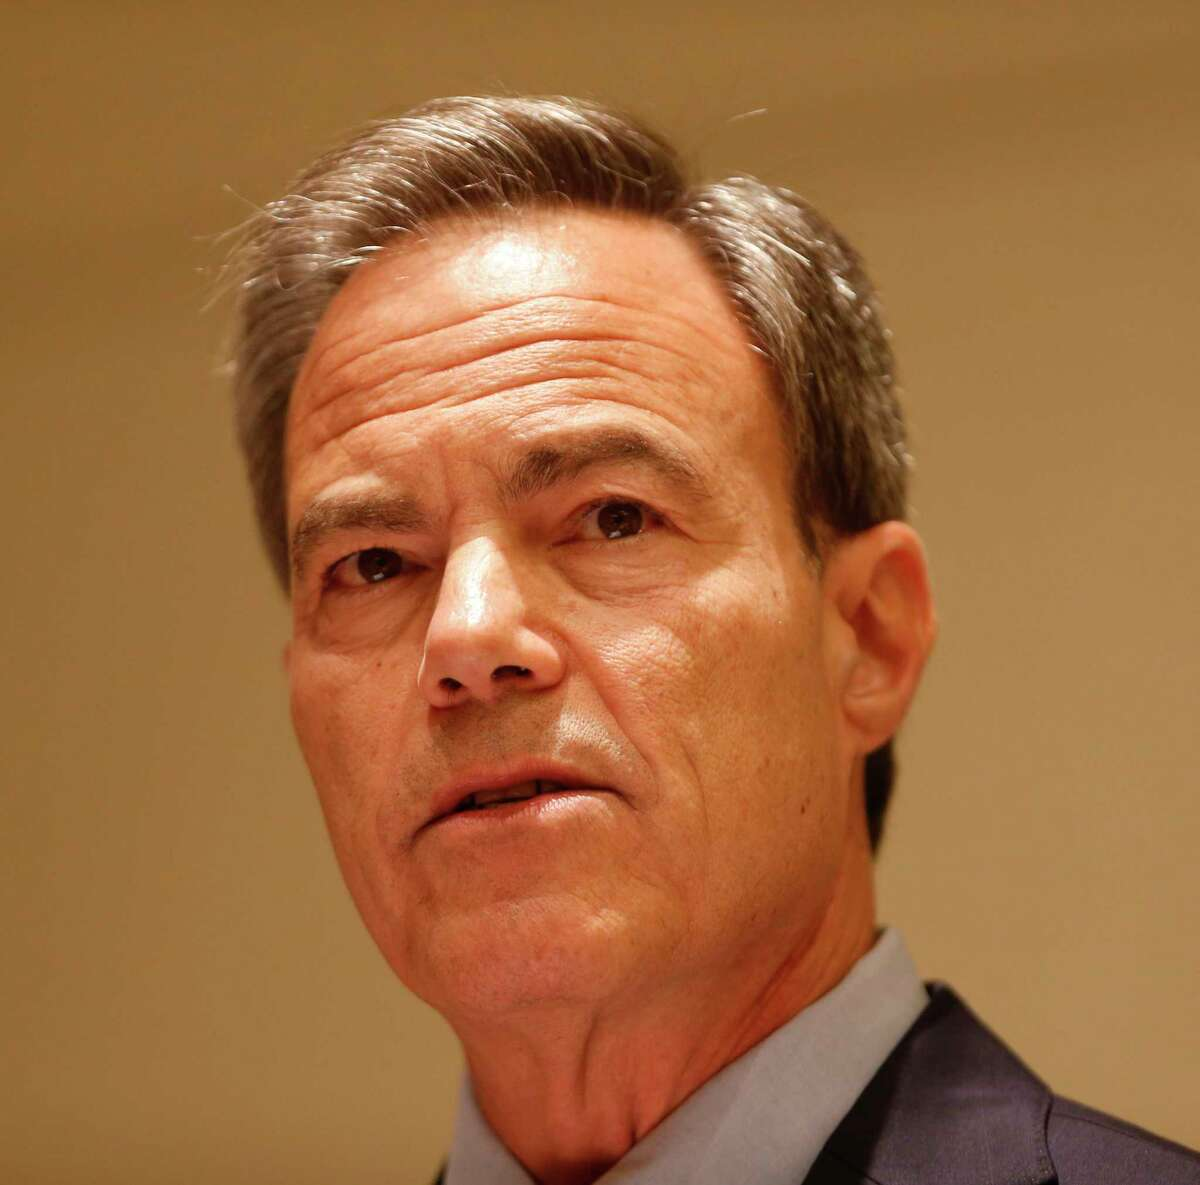 House Speaker Joe Straus address about 375 school board members and superintendents at a Texas Association of School Boards conference on Wednesday, June 14, at the San Antonio Marriott Rivercenter